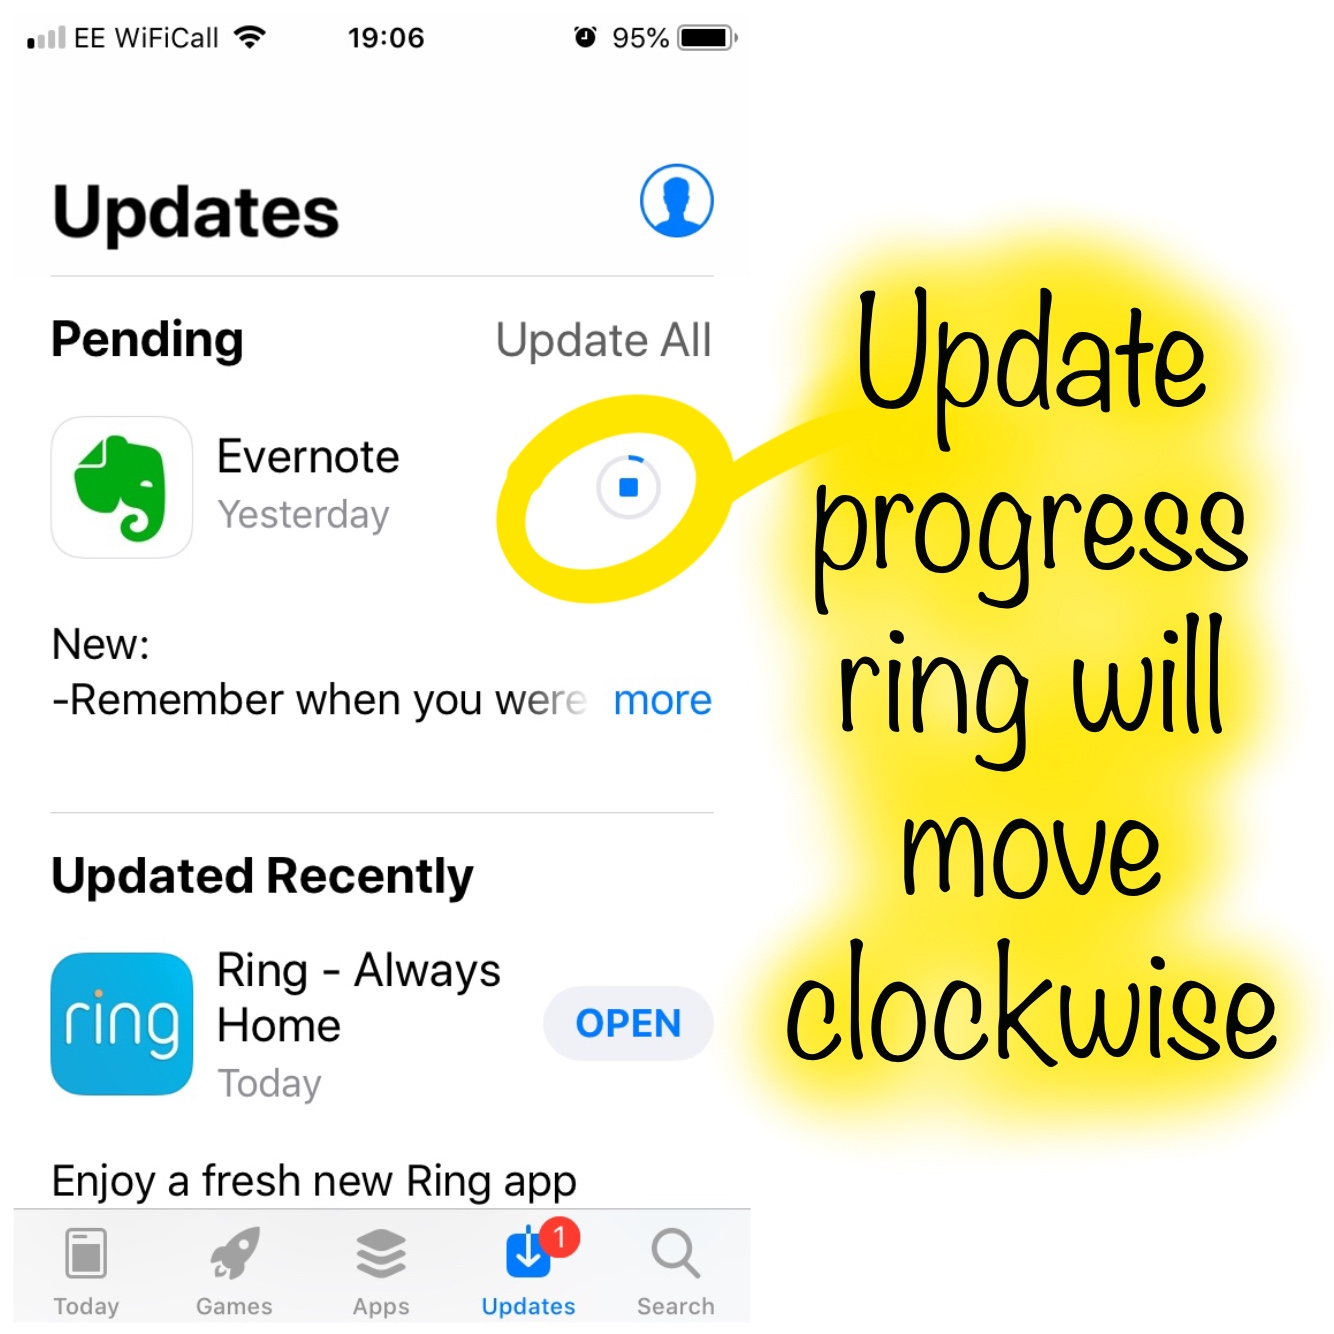 App Update progress ring